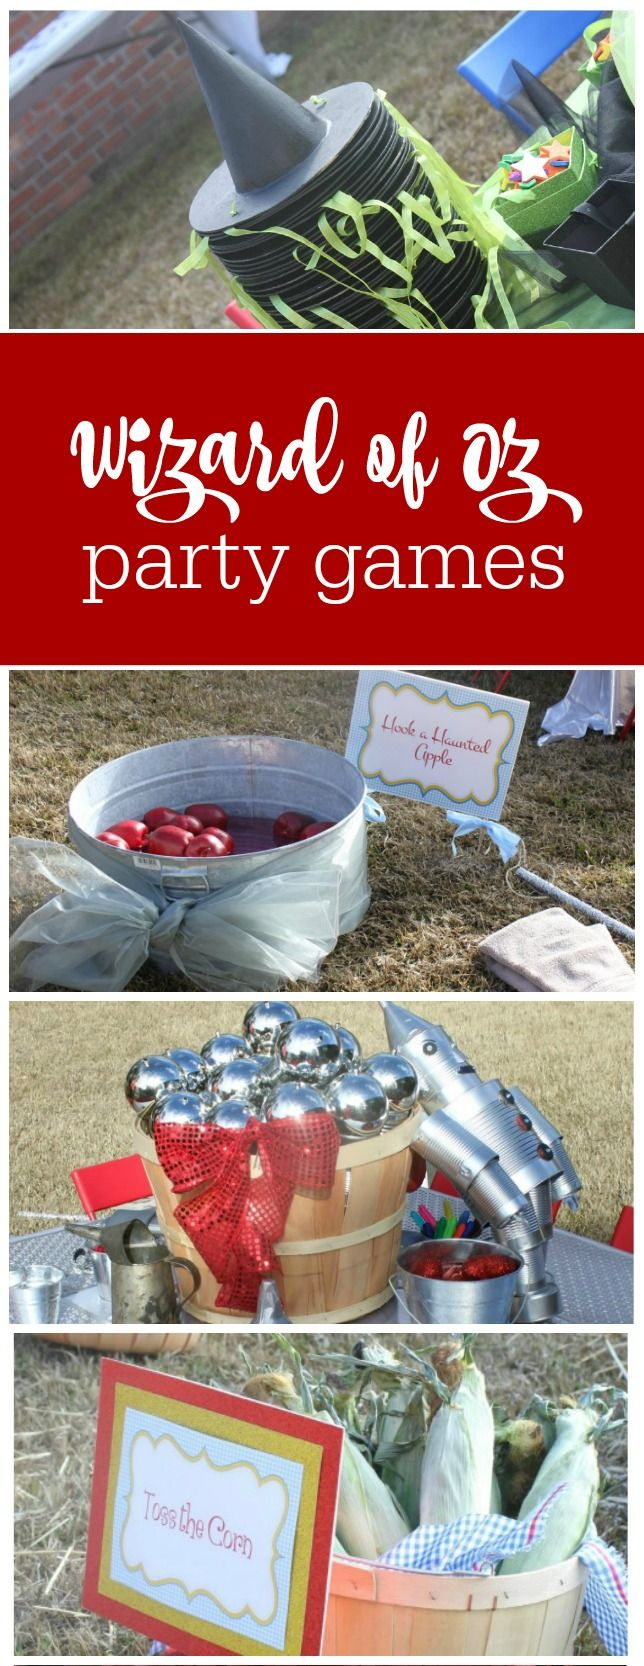 Guest Party Wizard Of Oz 4th Birthday Party Girls Party Games